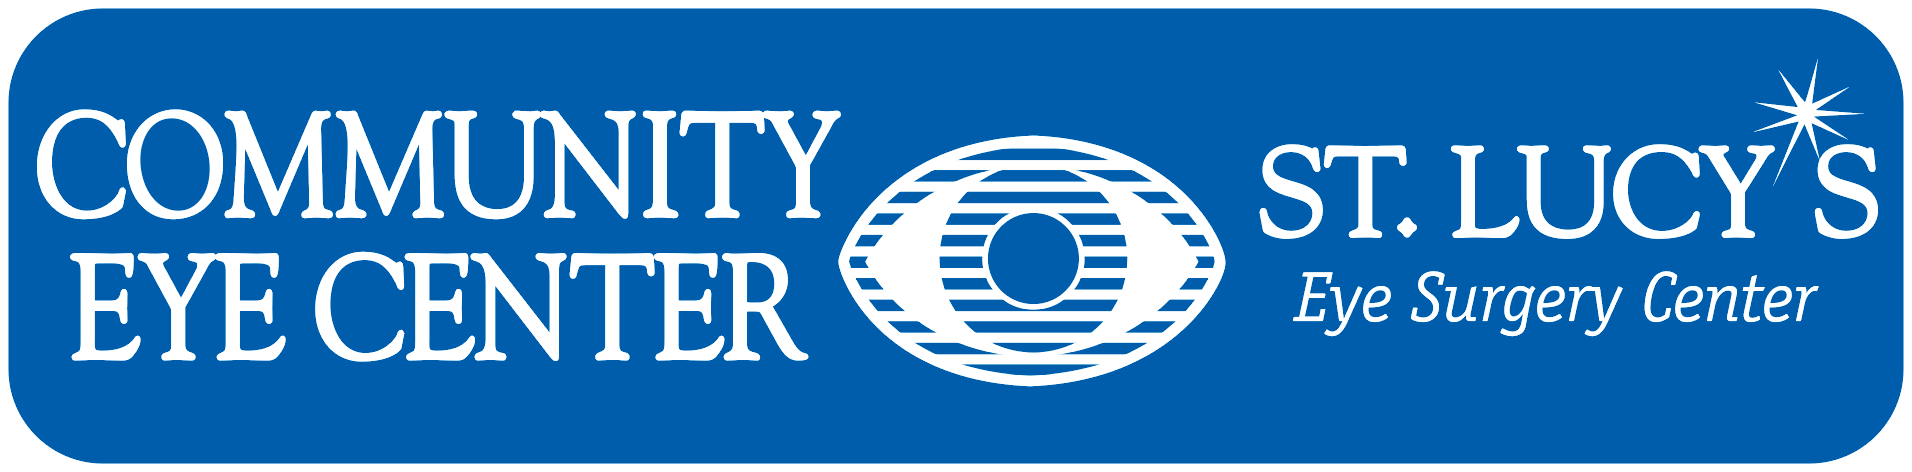 Community Eye Center logo